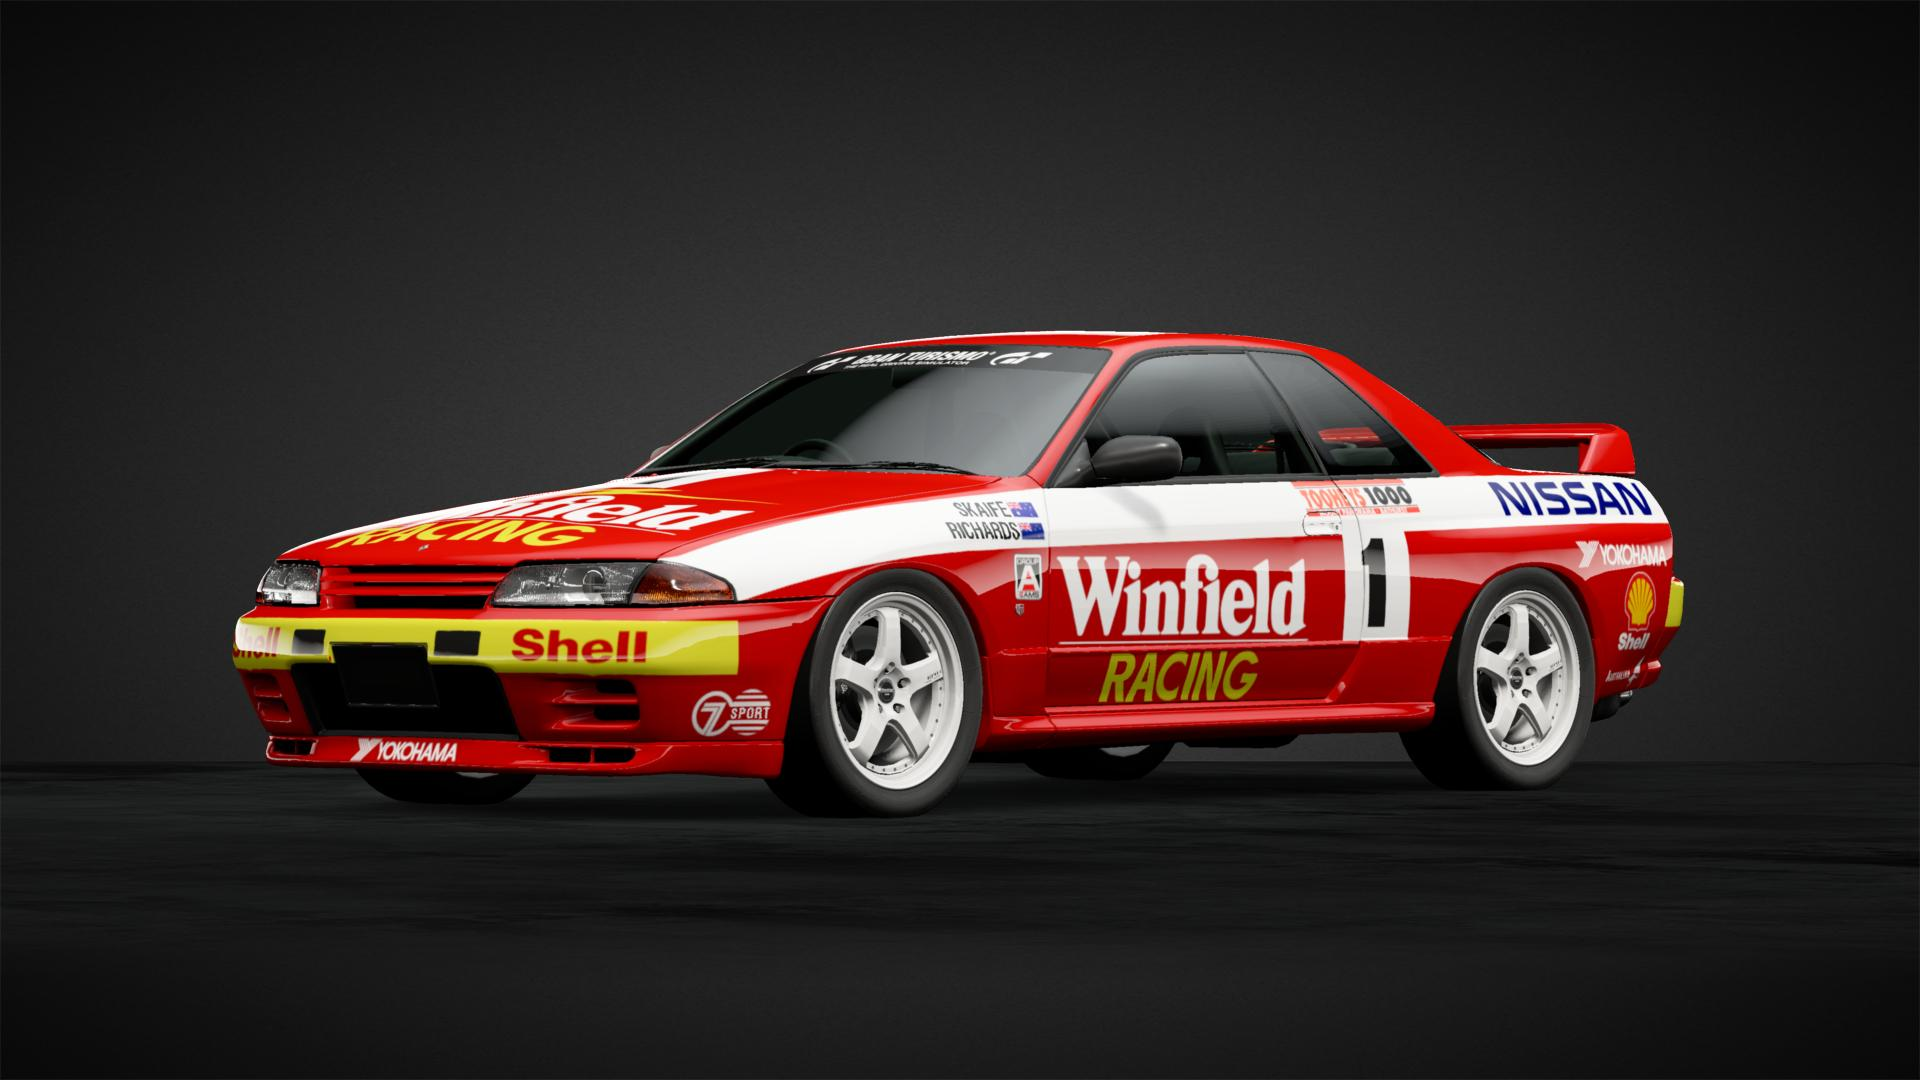 Winfield racing nissan r32 gtr car livery by sodes11 community gran turismo sport